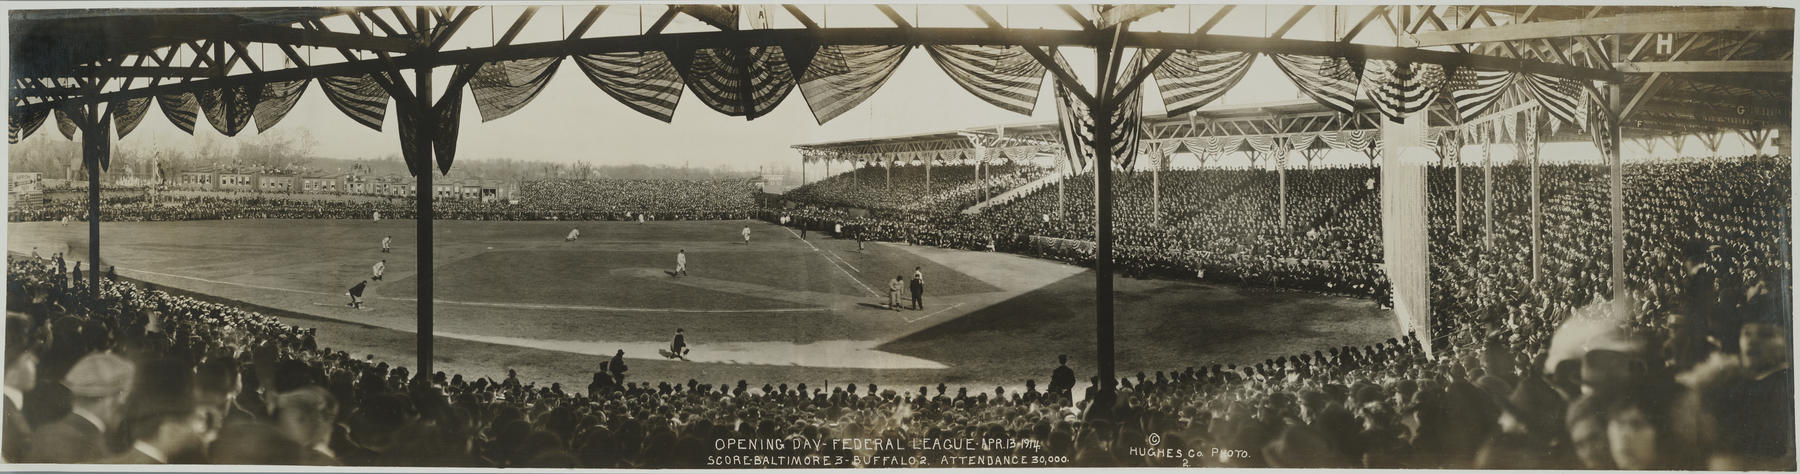 Baltimore's Terrapin Park, Opening Day of the Federal League, April 13, 1914 - BL-7389-85  (National Baseball Hall of Fame Library)